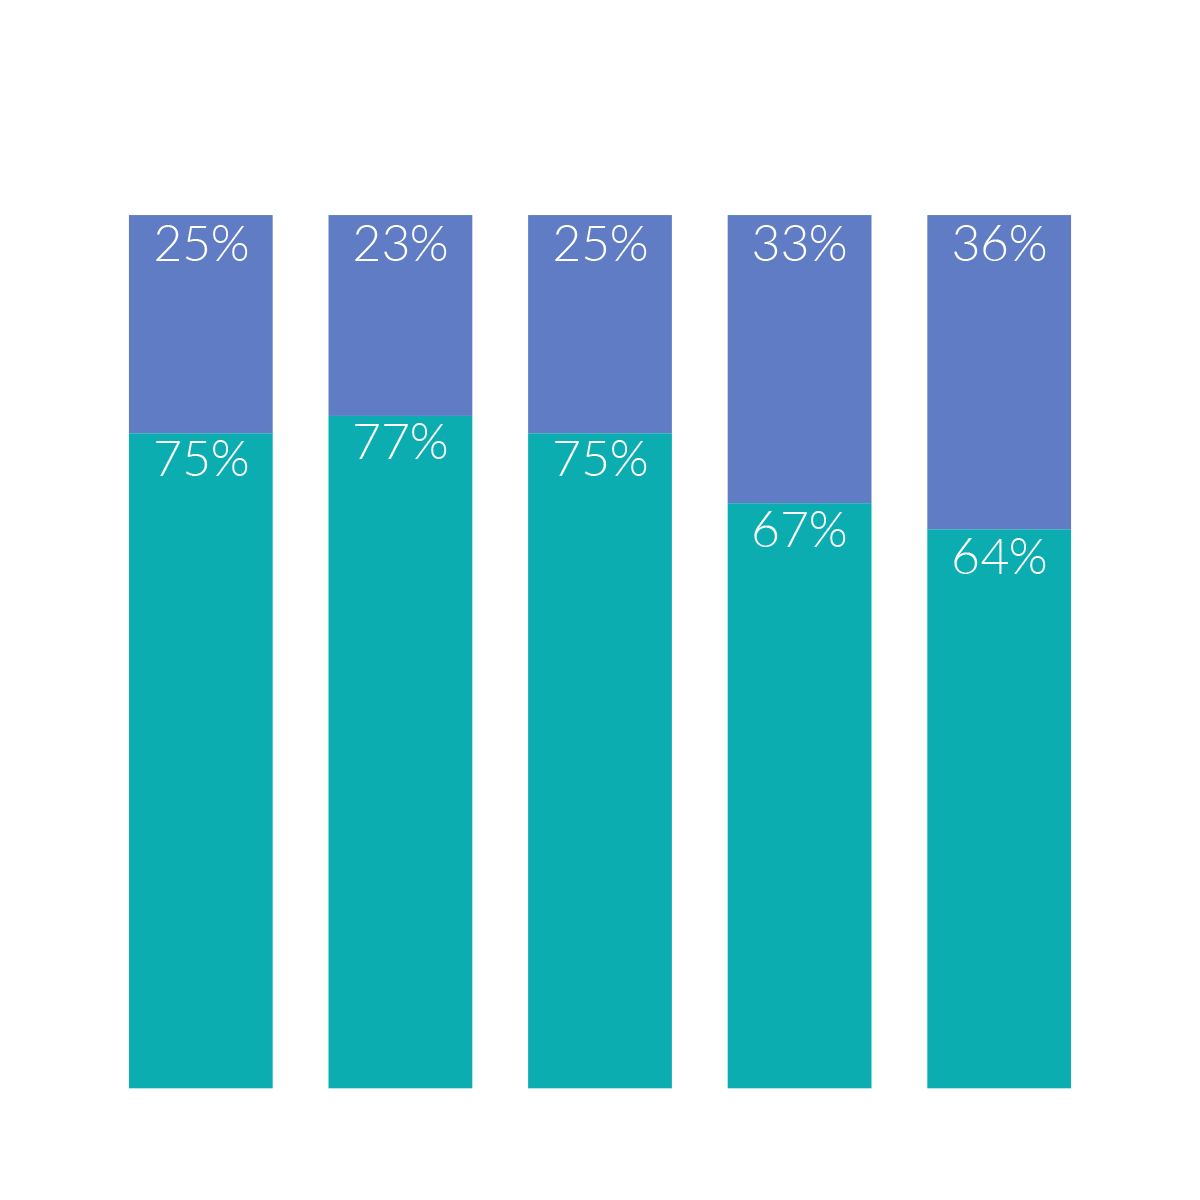 Millennials and Younger Gen X want a serious relationship more so than older Gen X and Baby Boomers.